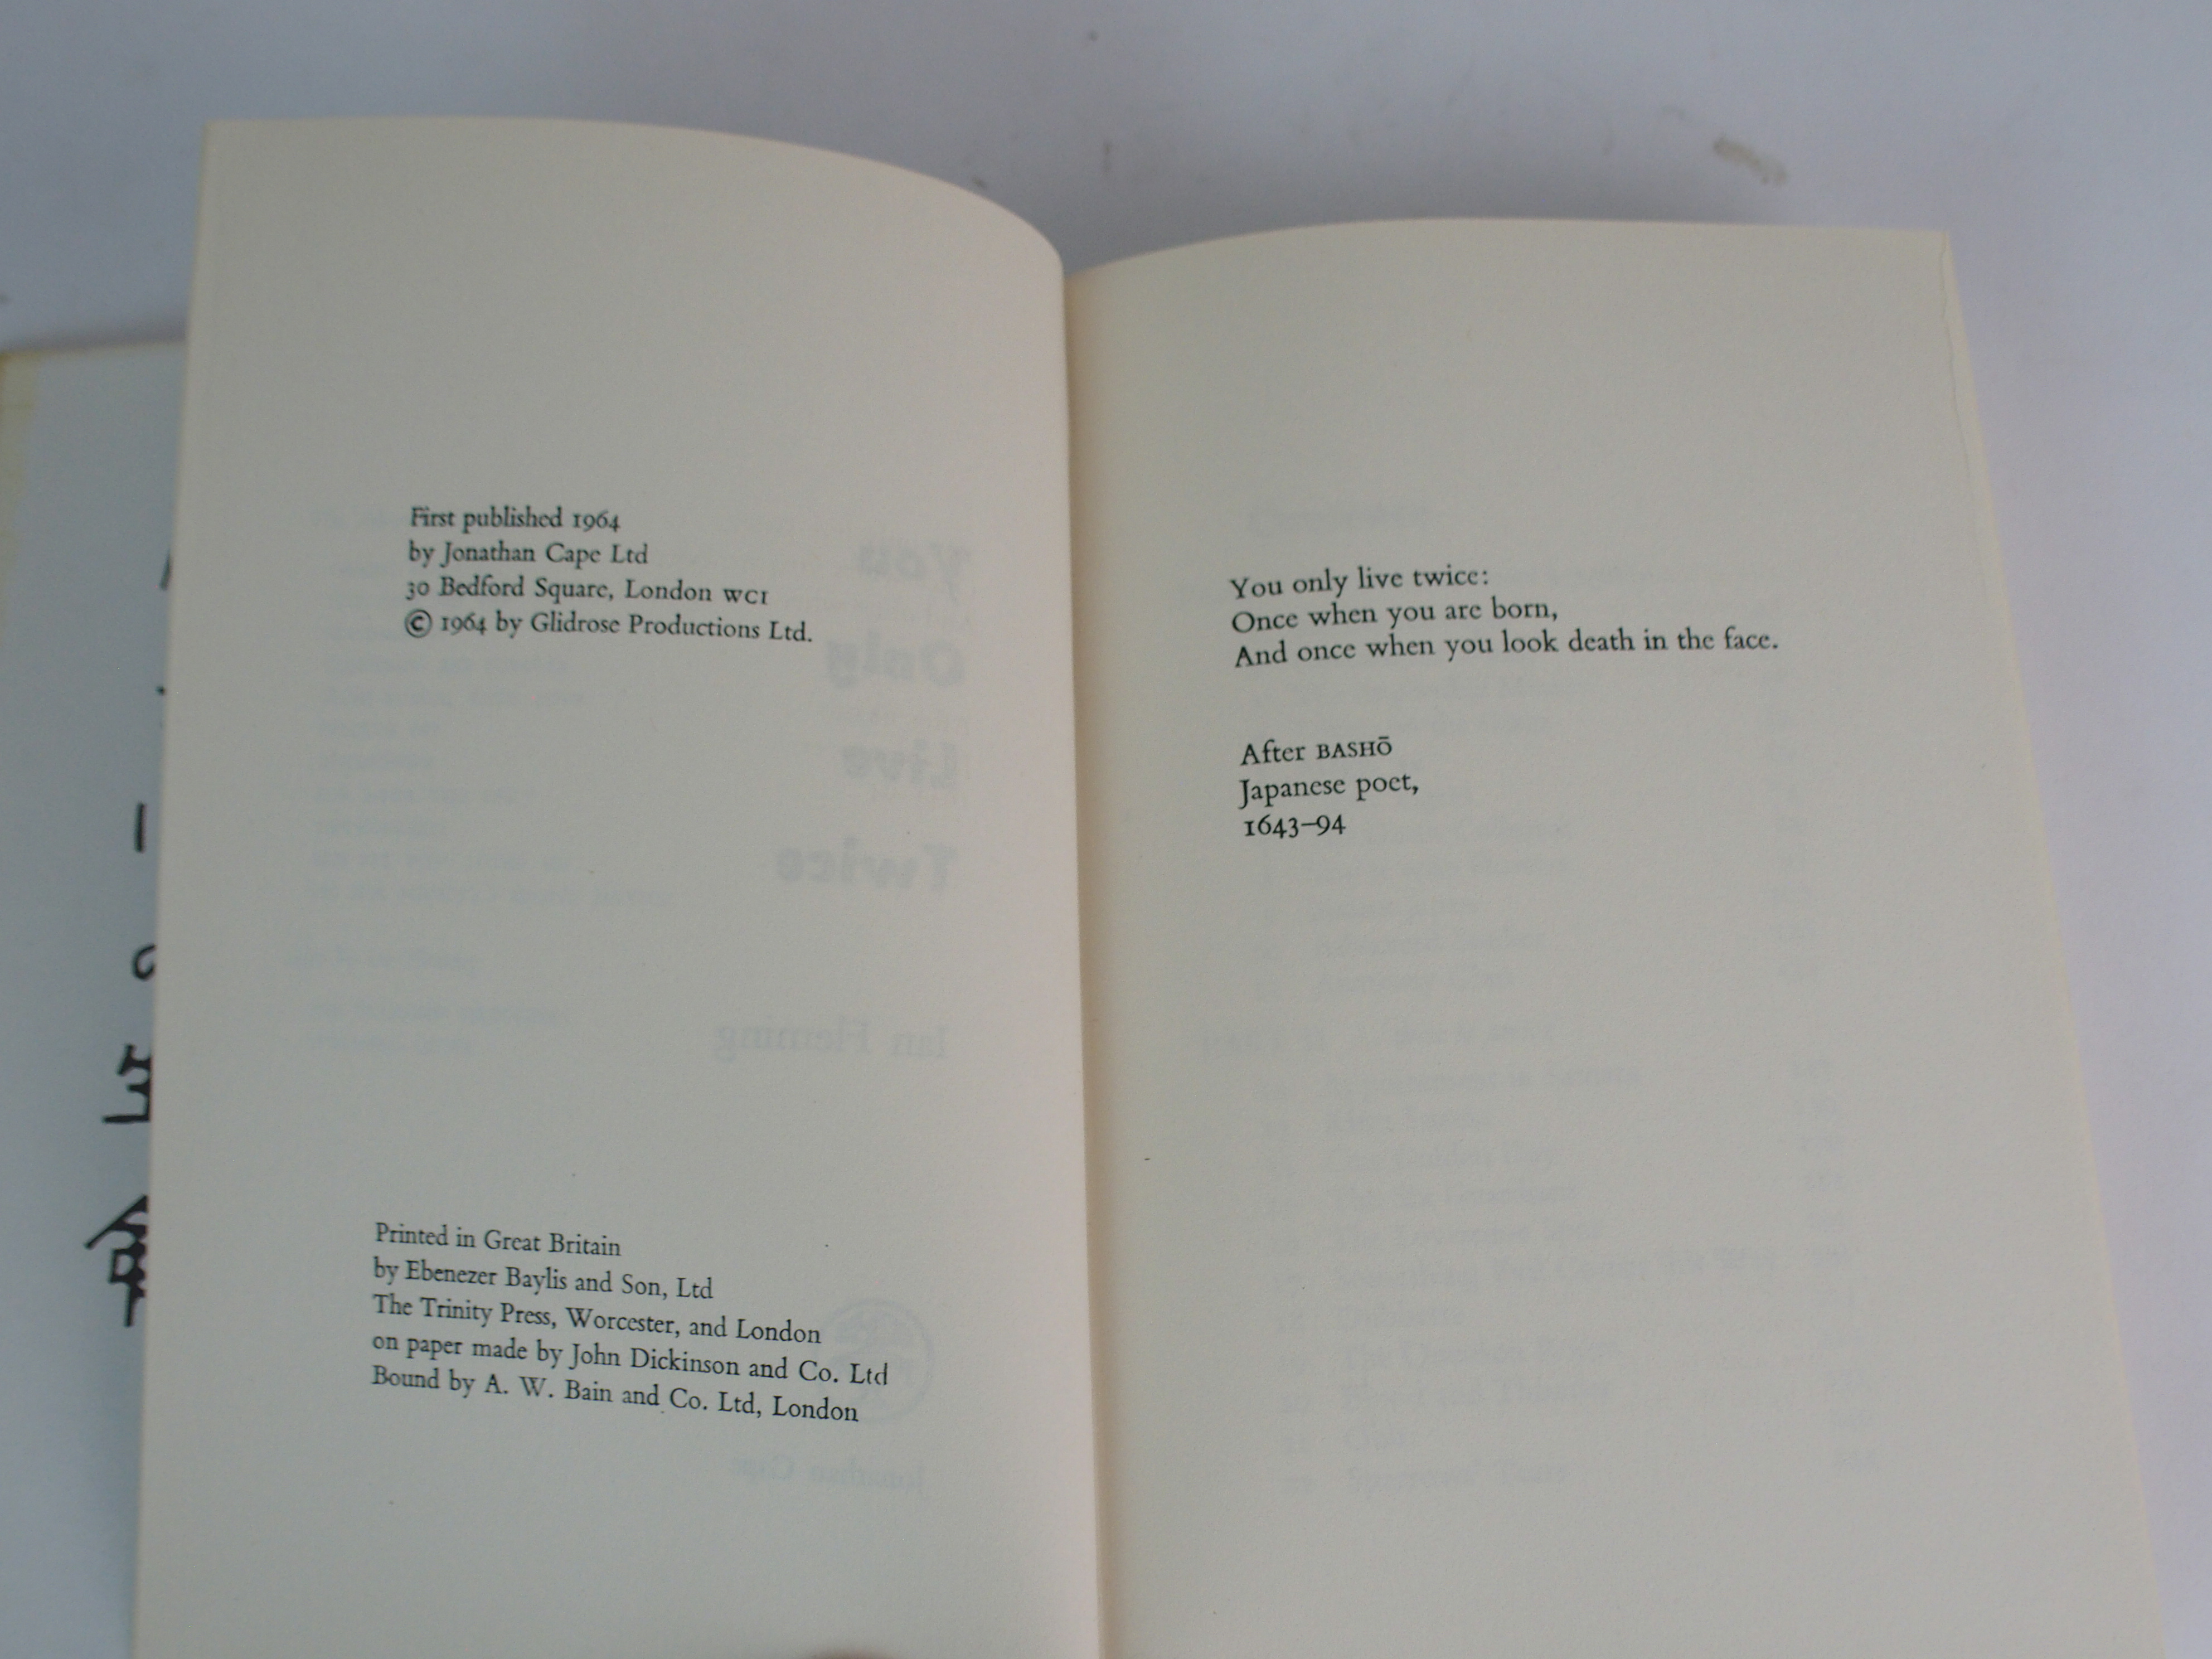 IAN FLEMING 'YOU ONLY LIVE TWICE' 1st edition 1964, unclipped with original dust jacket, published - Image 5 of 5